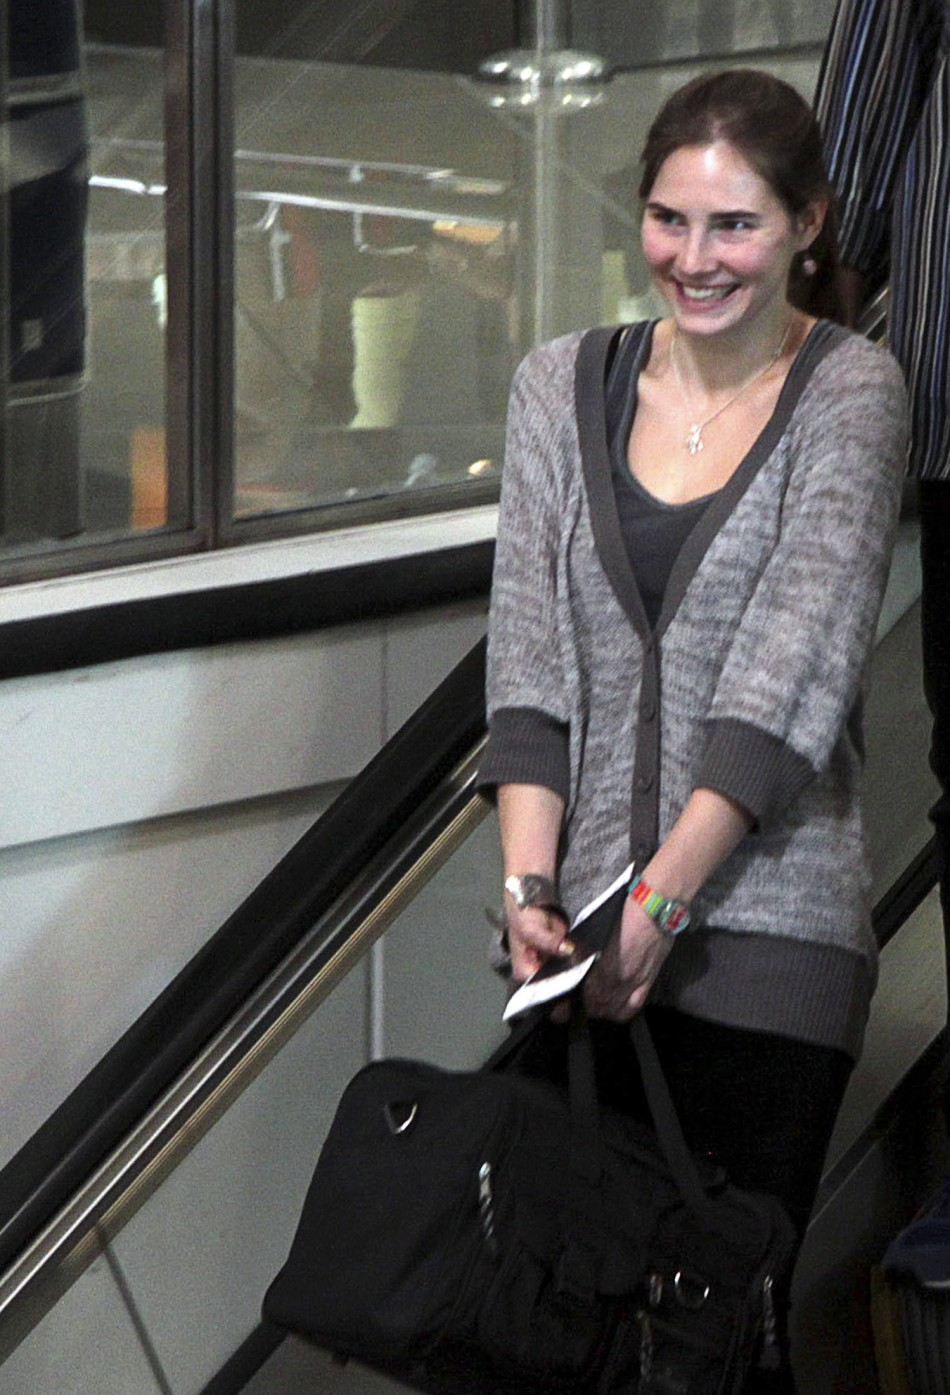 U.S. student Amanda Knox's smiles at the Leonardo Da Vinci airport in Fiumicino